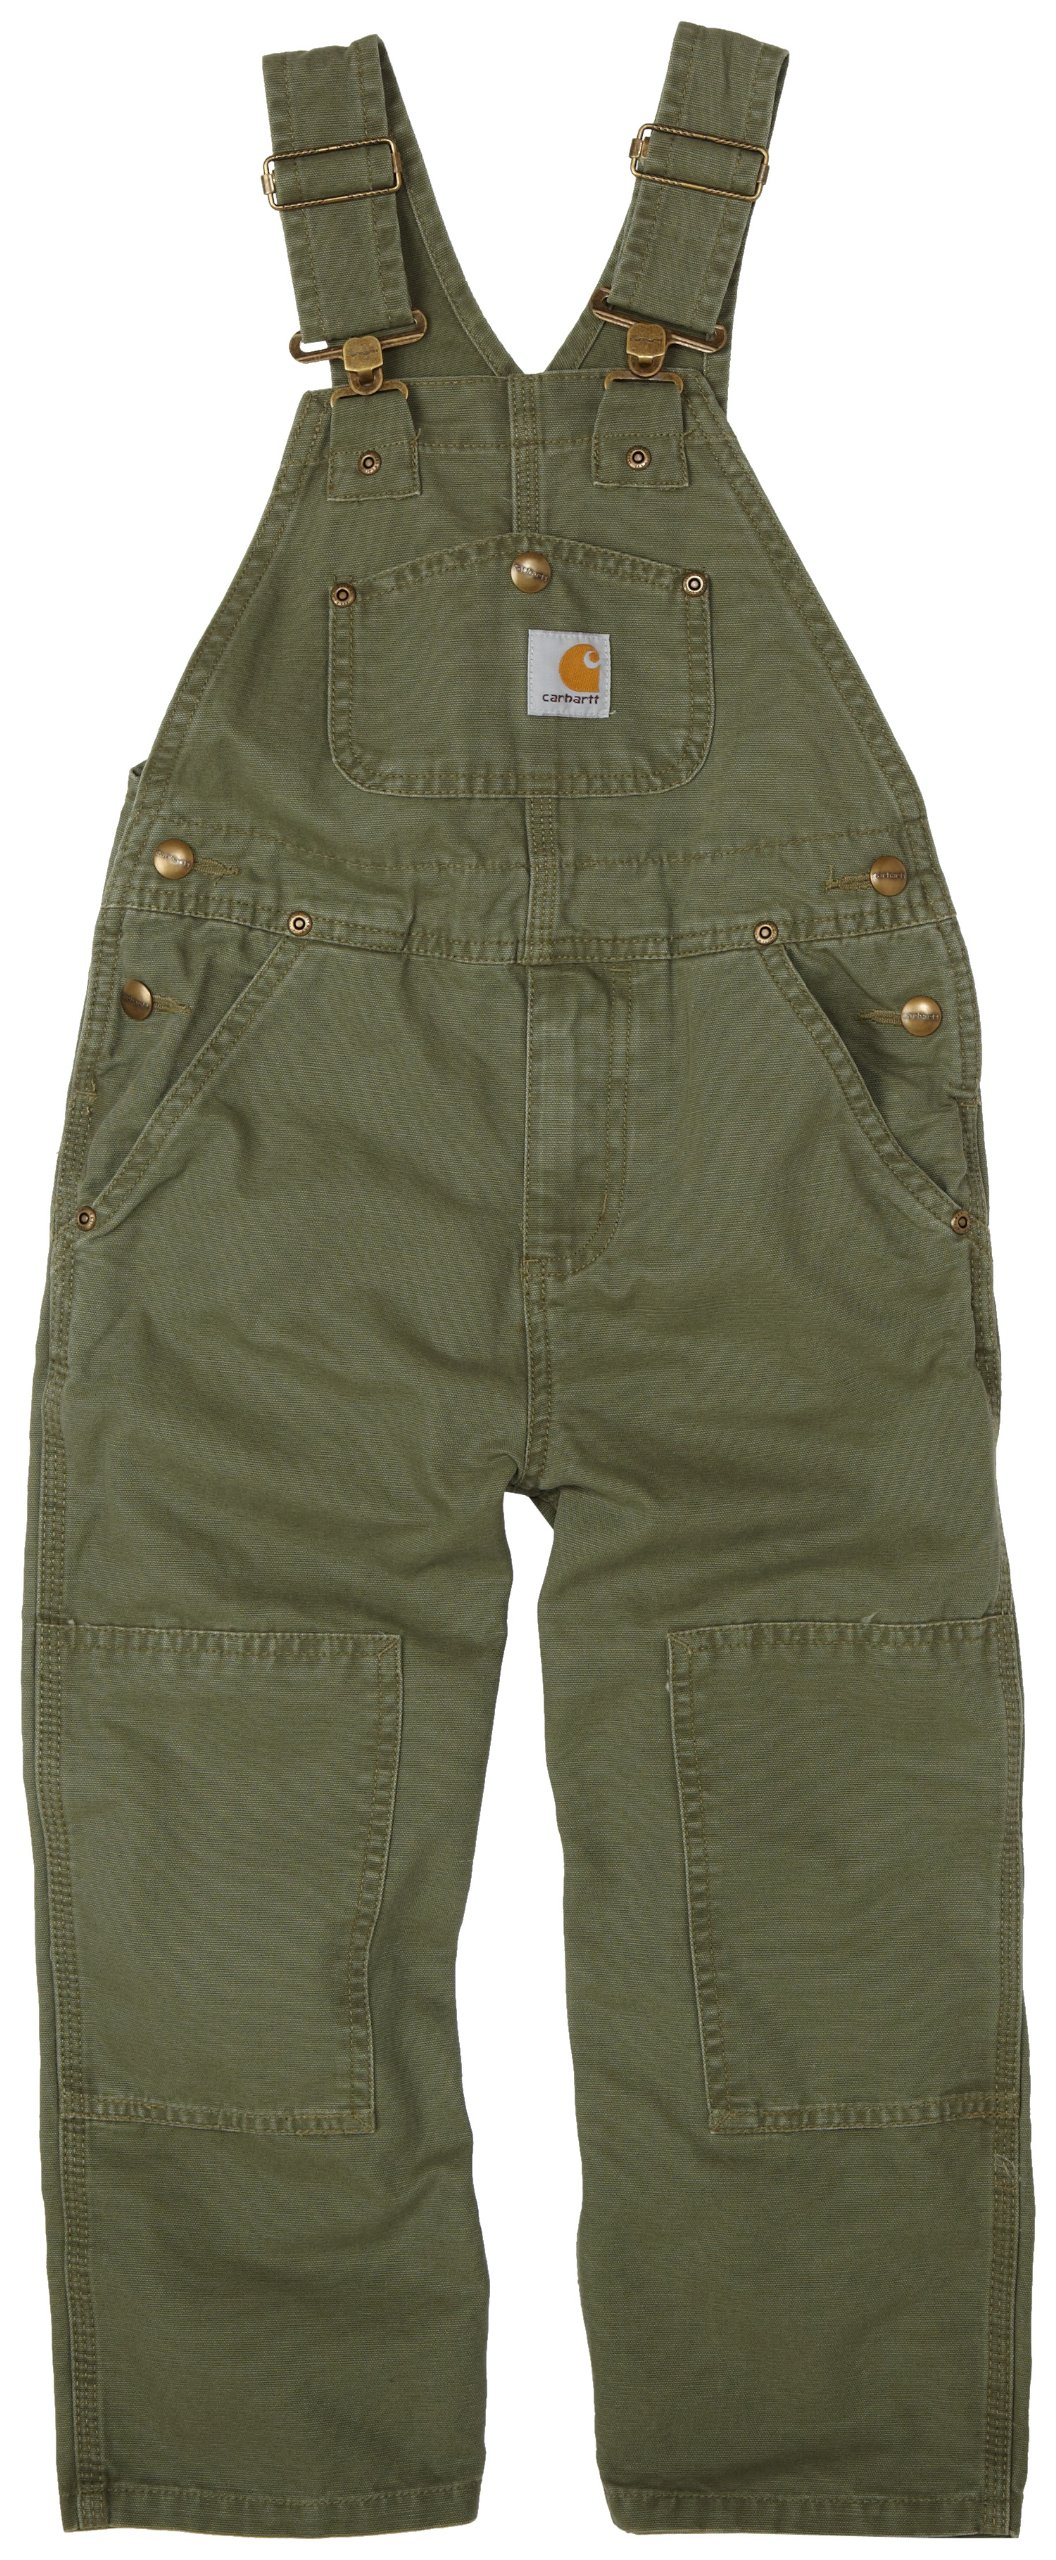 Carhartt Little Boys' Washed Bib Overall, Ivy Green, 7